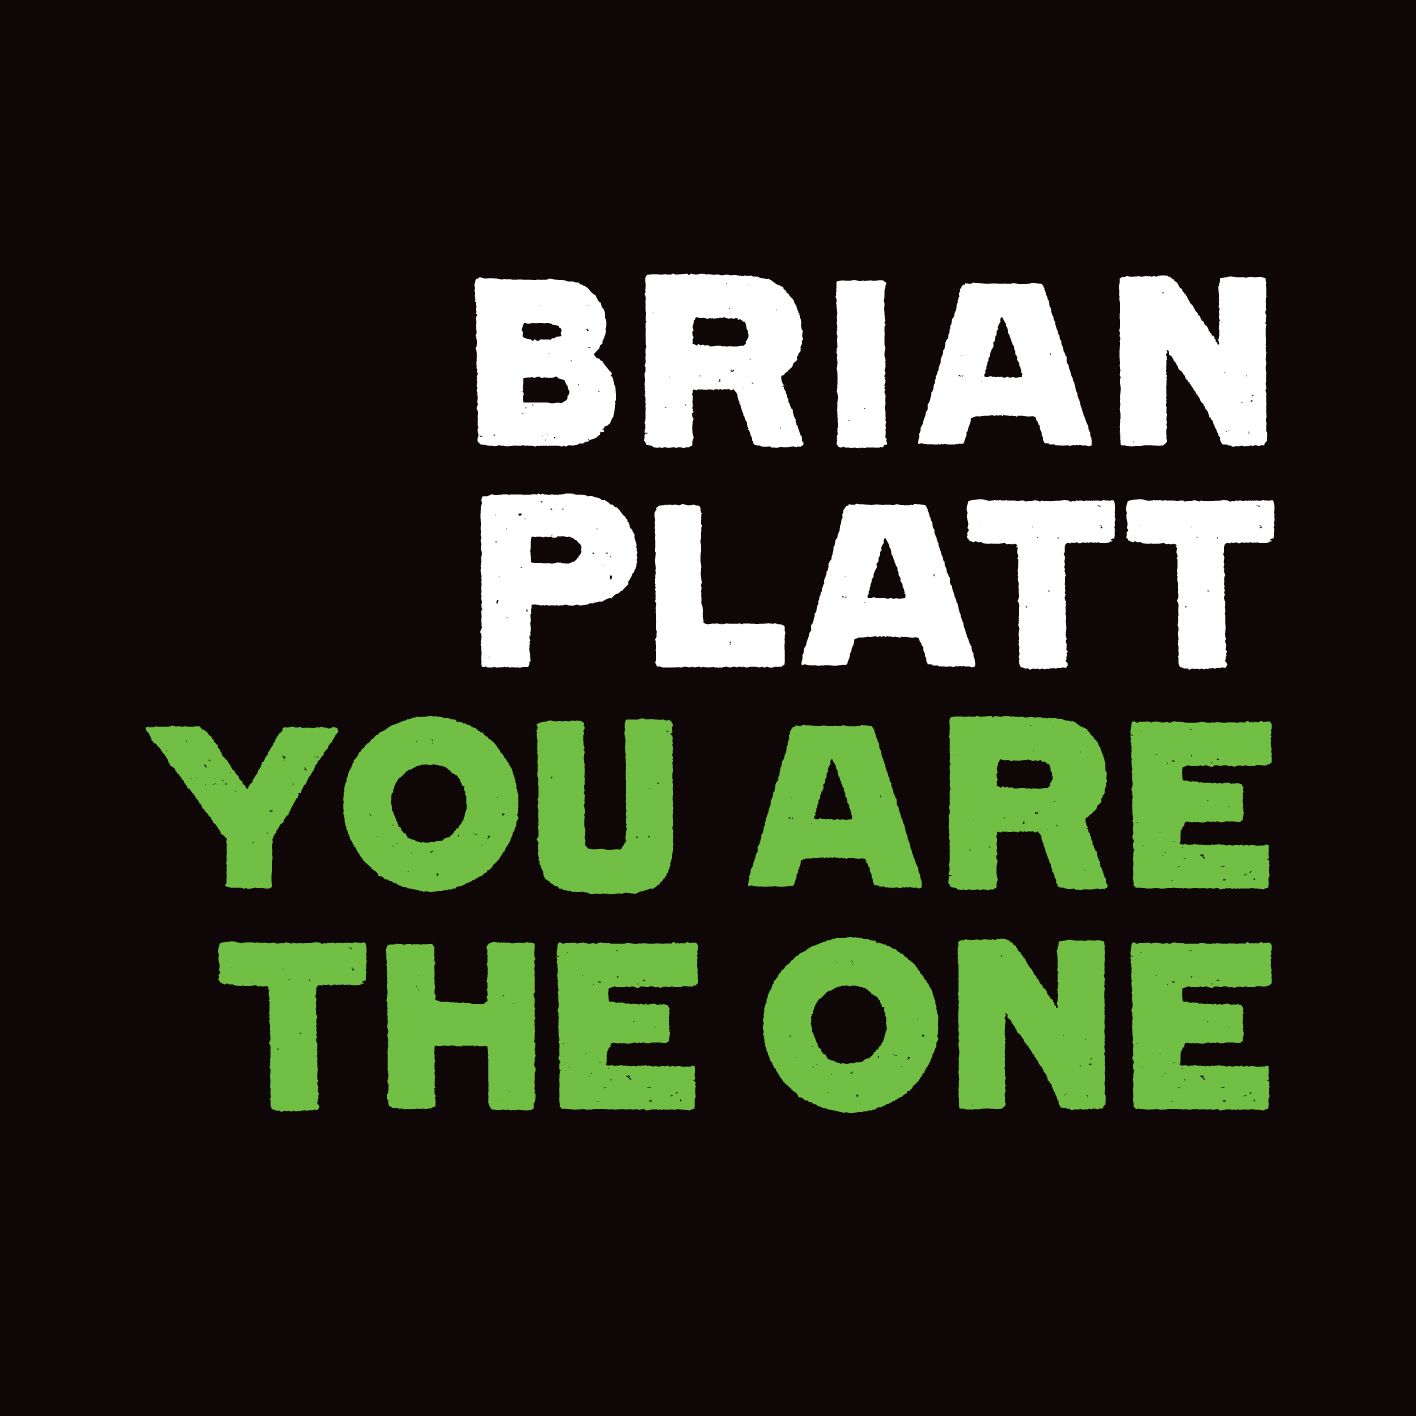 BRIAN PLTT 'YOU ARE THE ONE'